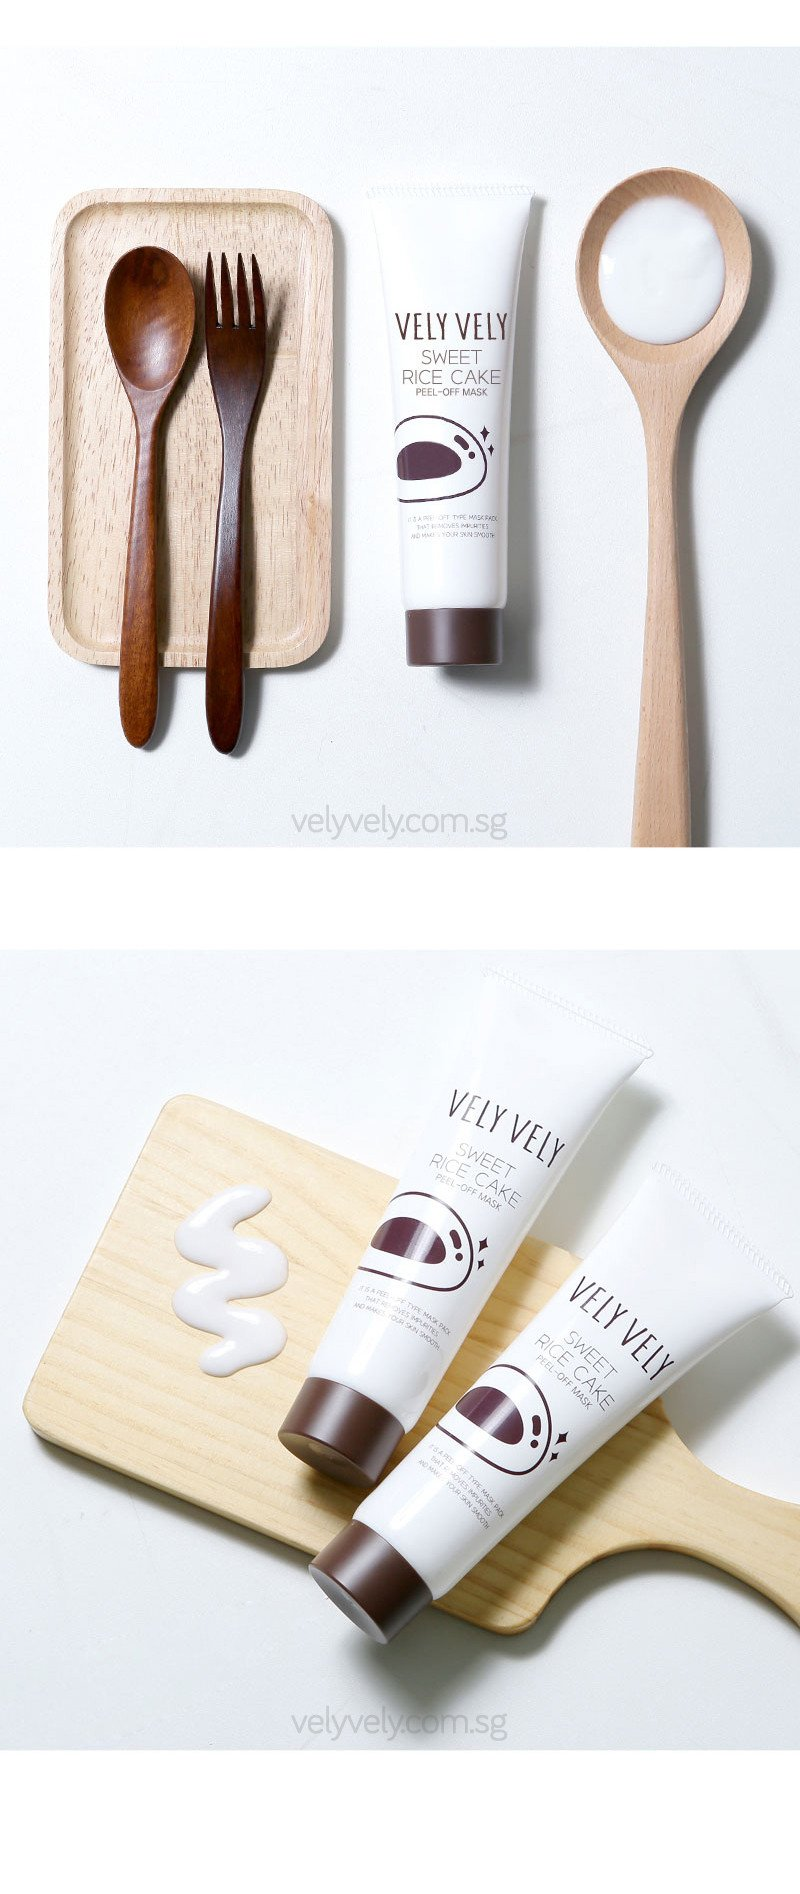 Korea's Cosmetic Brand, Vely Vely Sweet Rice Cake Peel-Off Mask flatlays